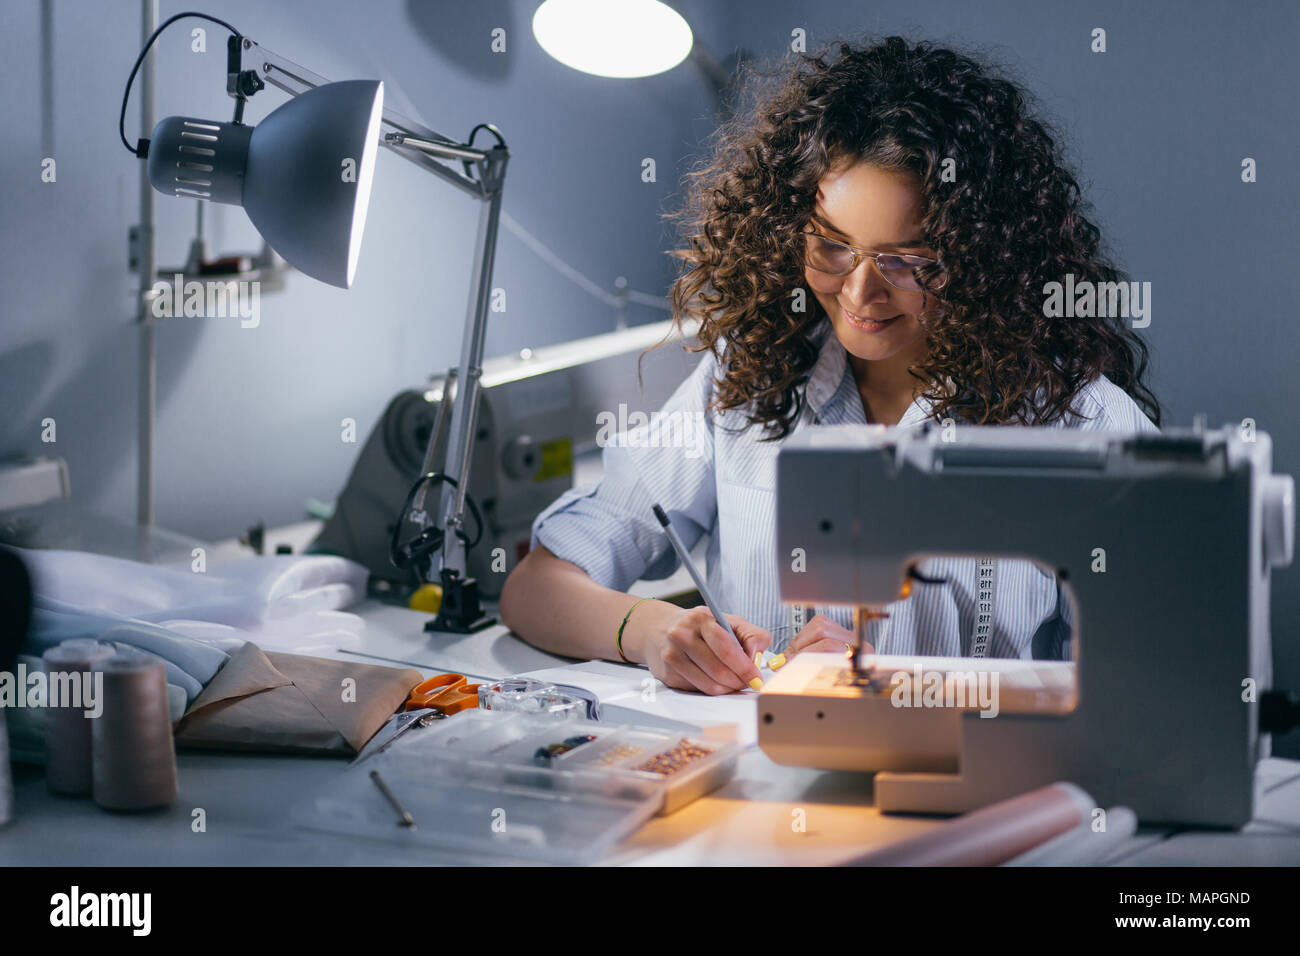 female is drawing up a draft in front of sewing machine - Stock Image